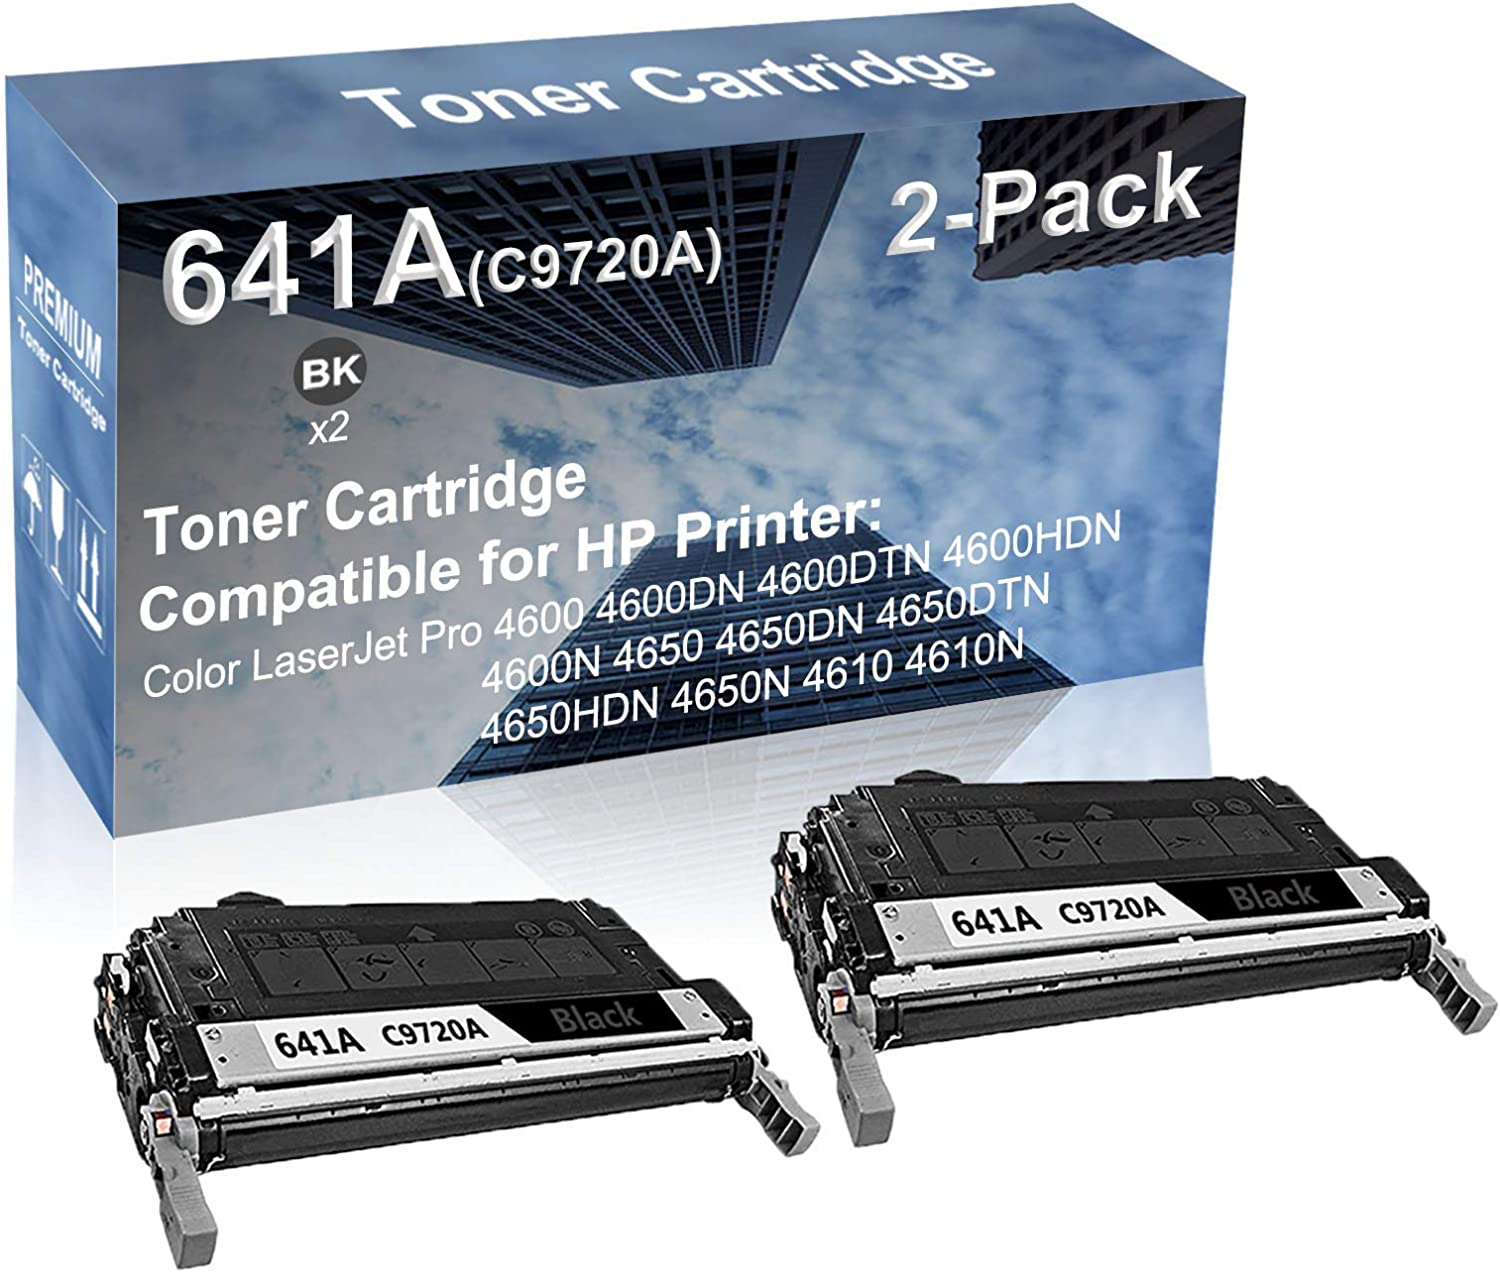 2-Pack (Black) Compatible High Yield 641A (C9720A) Laser Printer Toner Cartridge use for HP 4650HDN 4650N 4610 4610N Printer